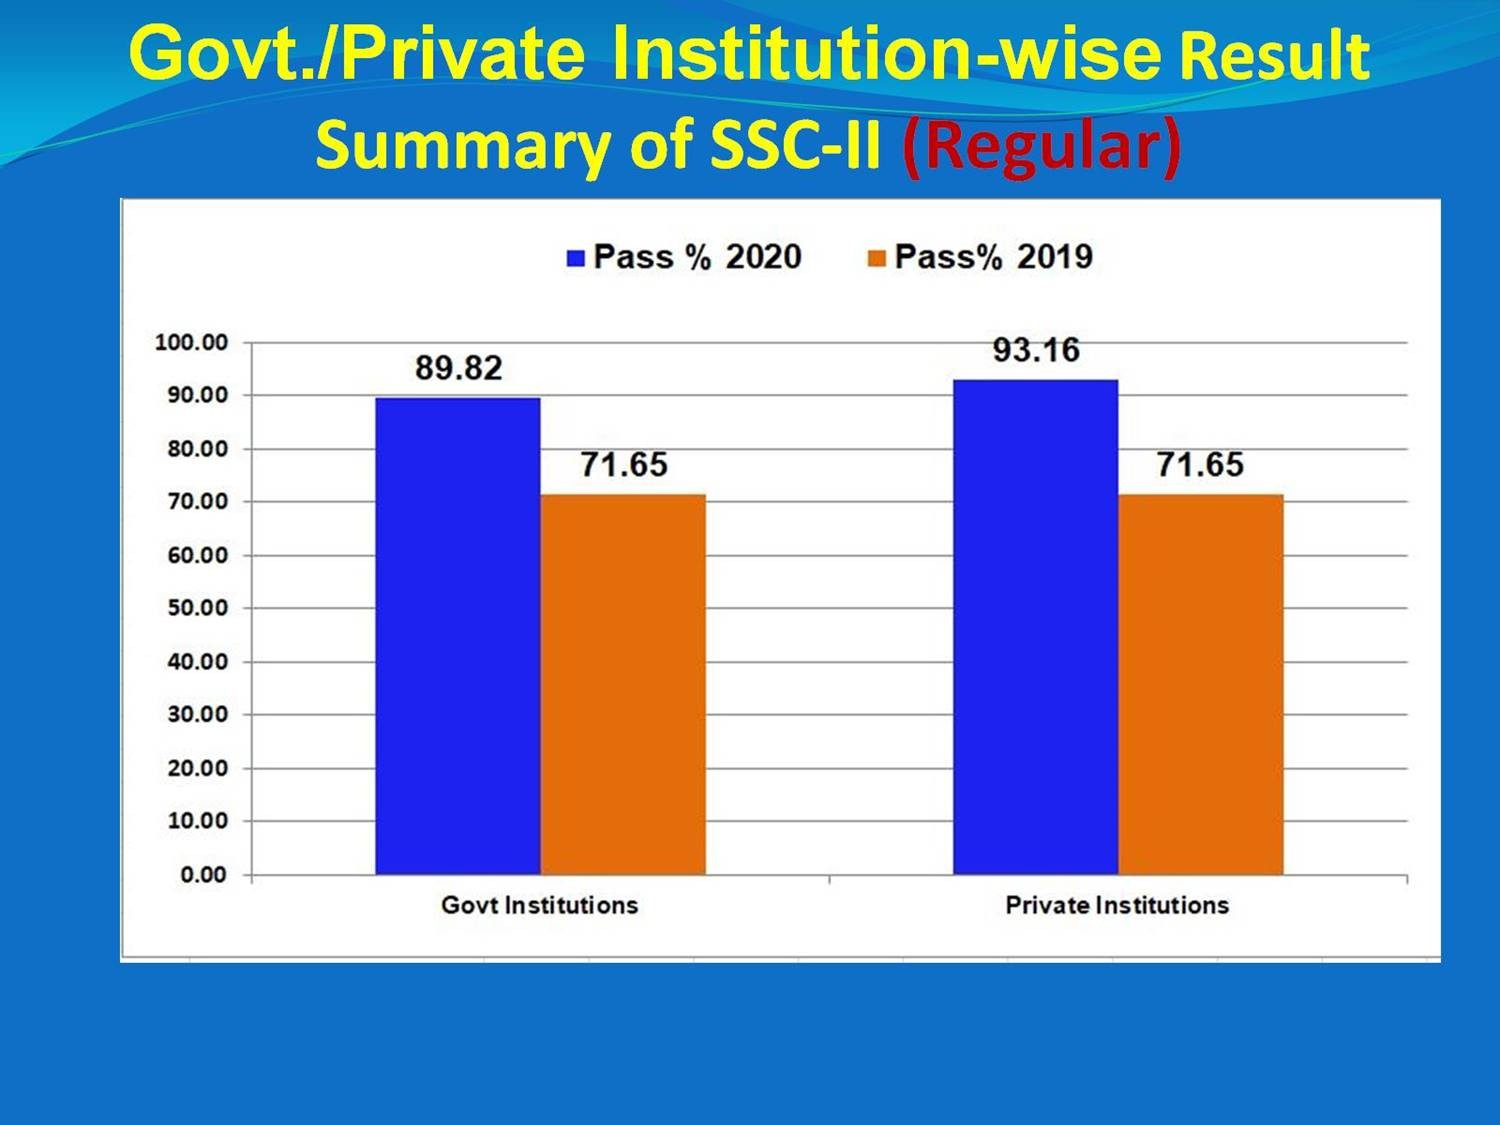 Govt./Private Institution Wise Result Summary of SSC-II